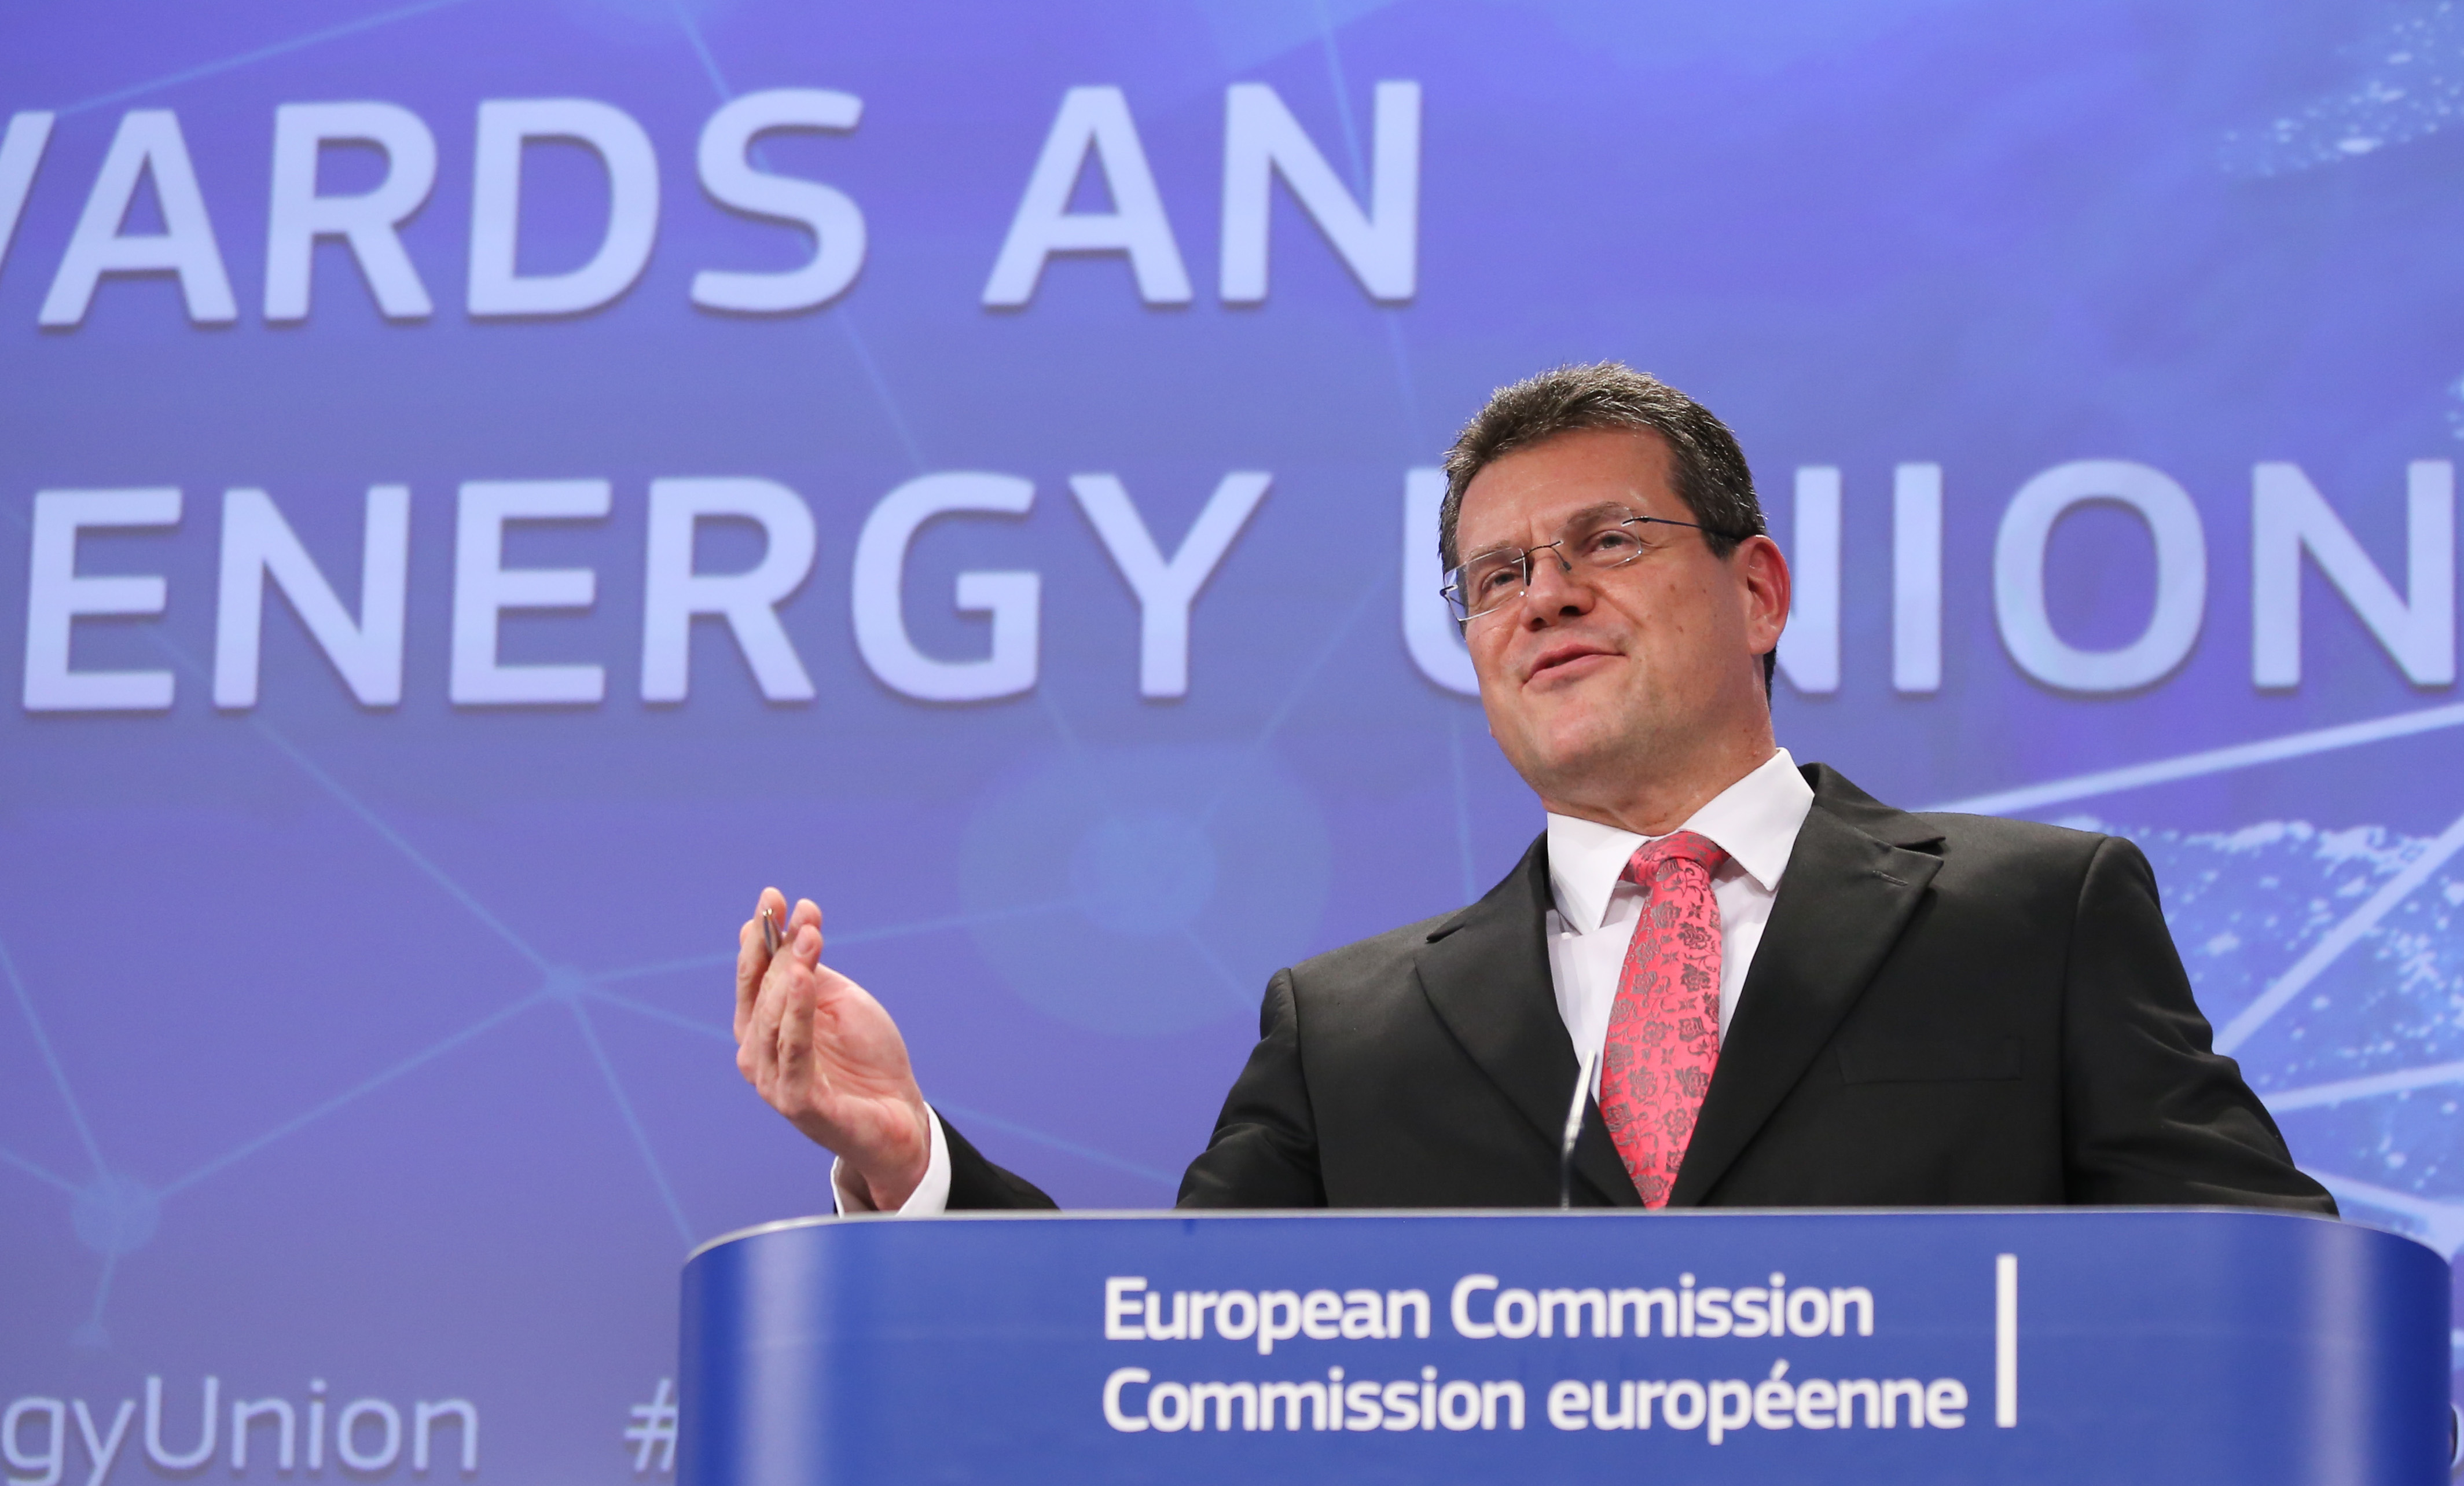 Smart Meters Not Needed After All For European Power